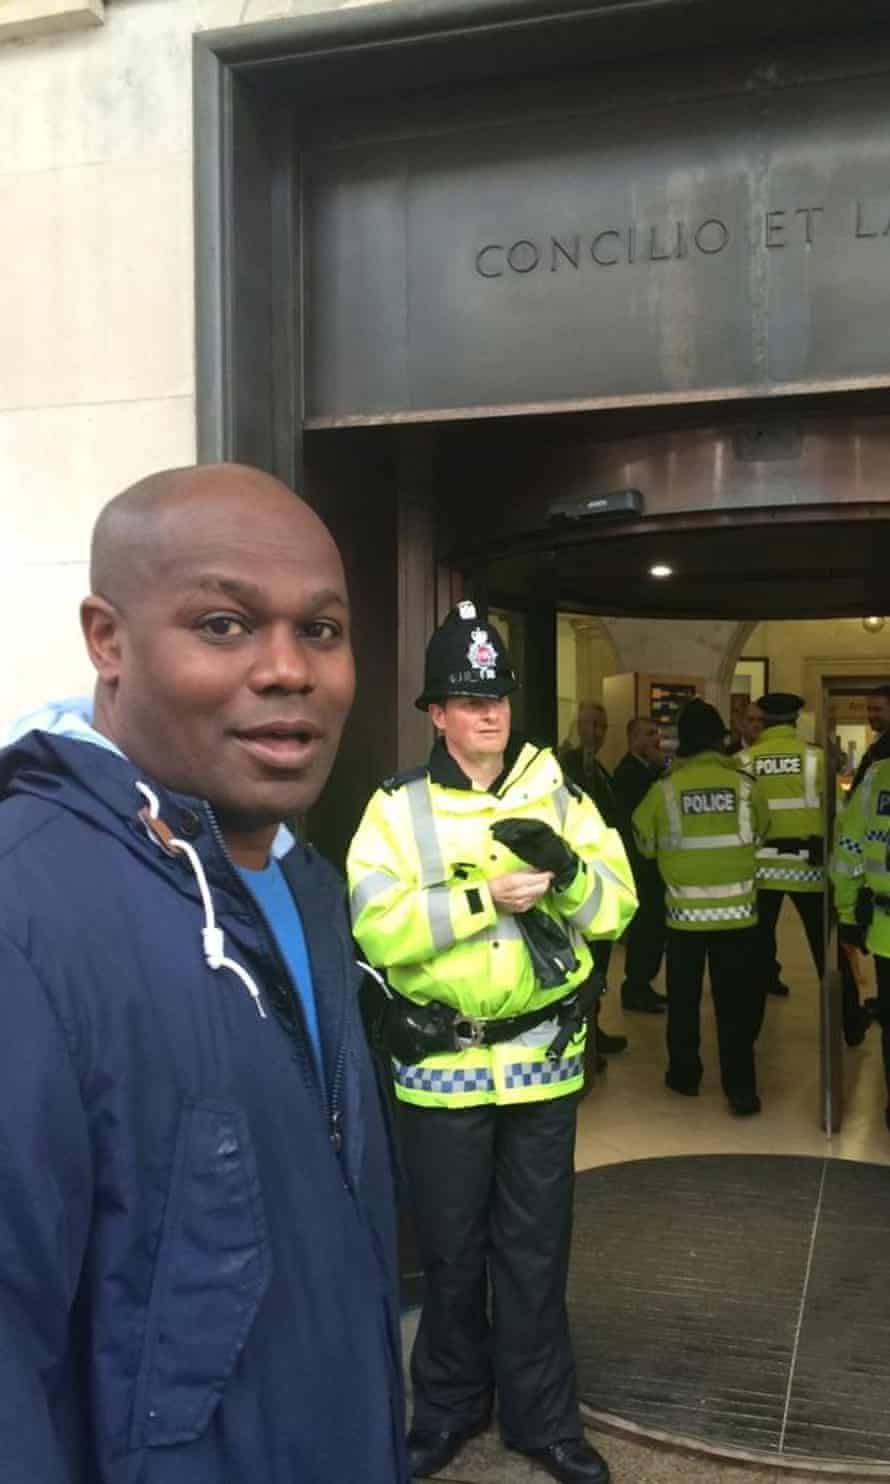 Student Anthony Johnson was not allowed access to the central library after officers saw him talking to the homeless protesters. Greater Manchester police later said it was 'a misunderstanding' and let him in